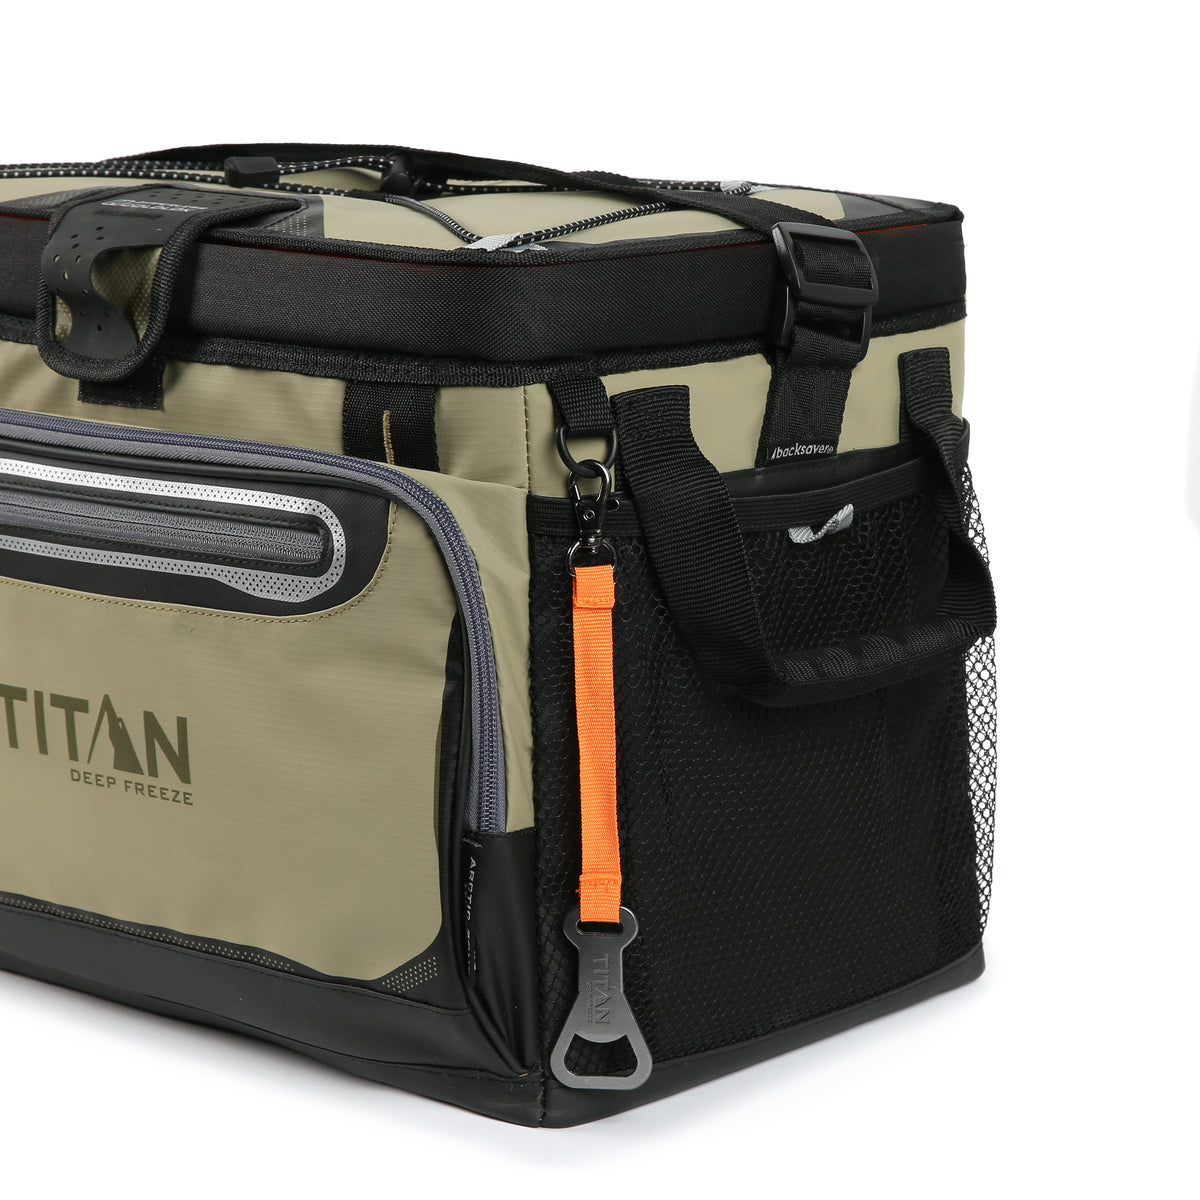 Titan Deep Freeze® 30 Can Zipperless™ Cooler - Moss - Mesh side pockets